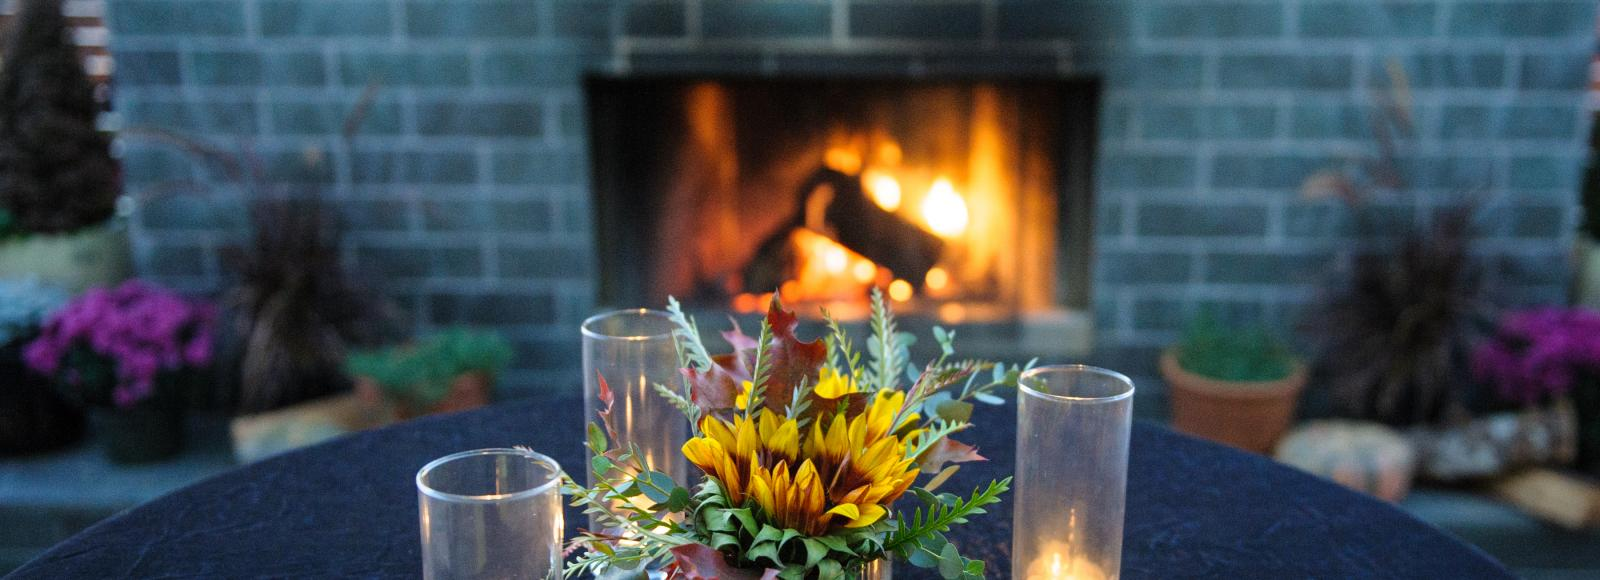 Candles and flowers on terrace in front of a glowing fire